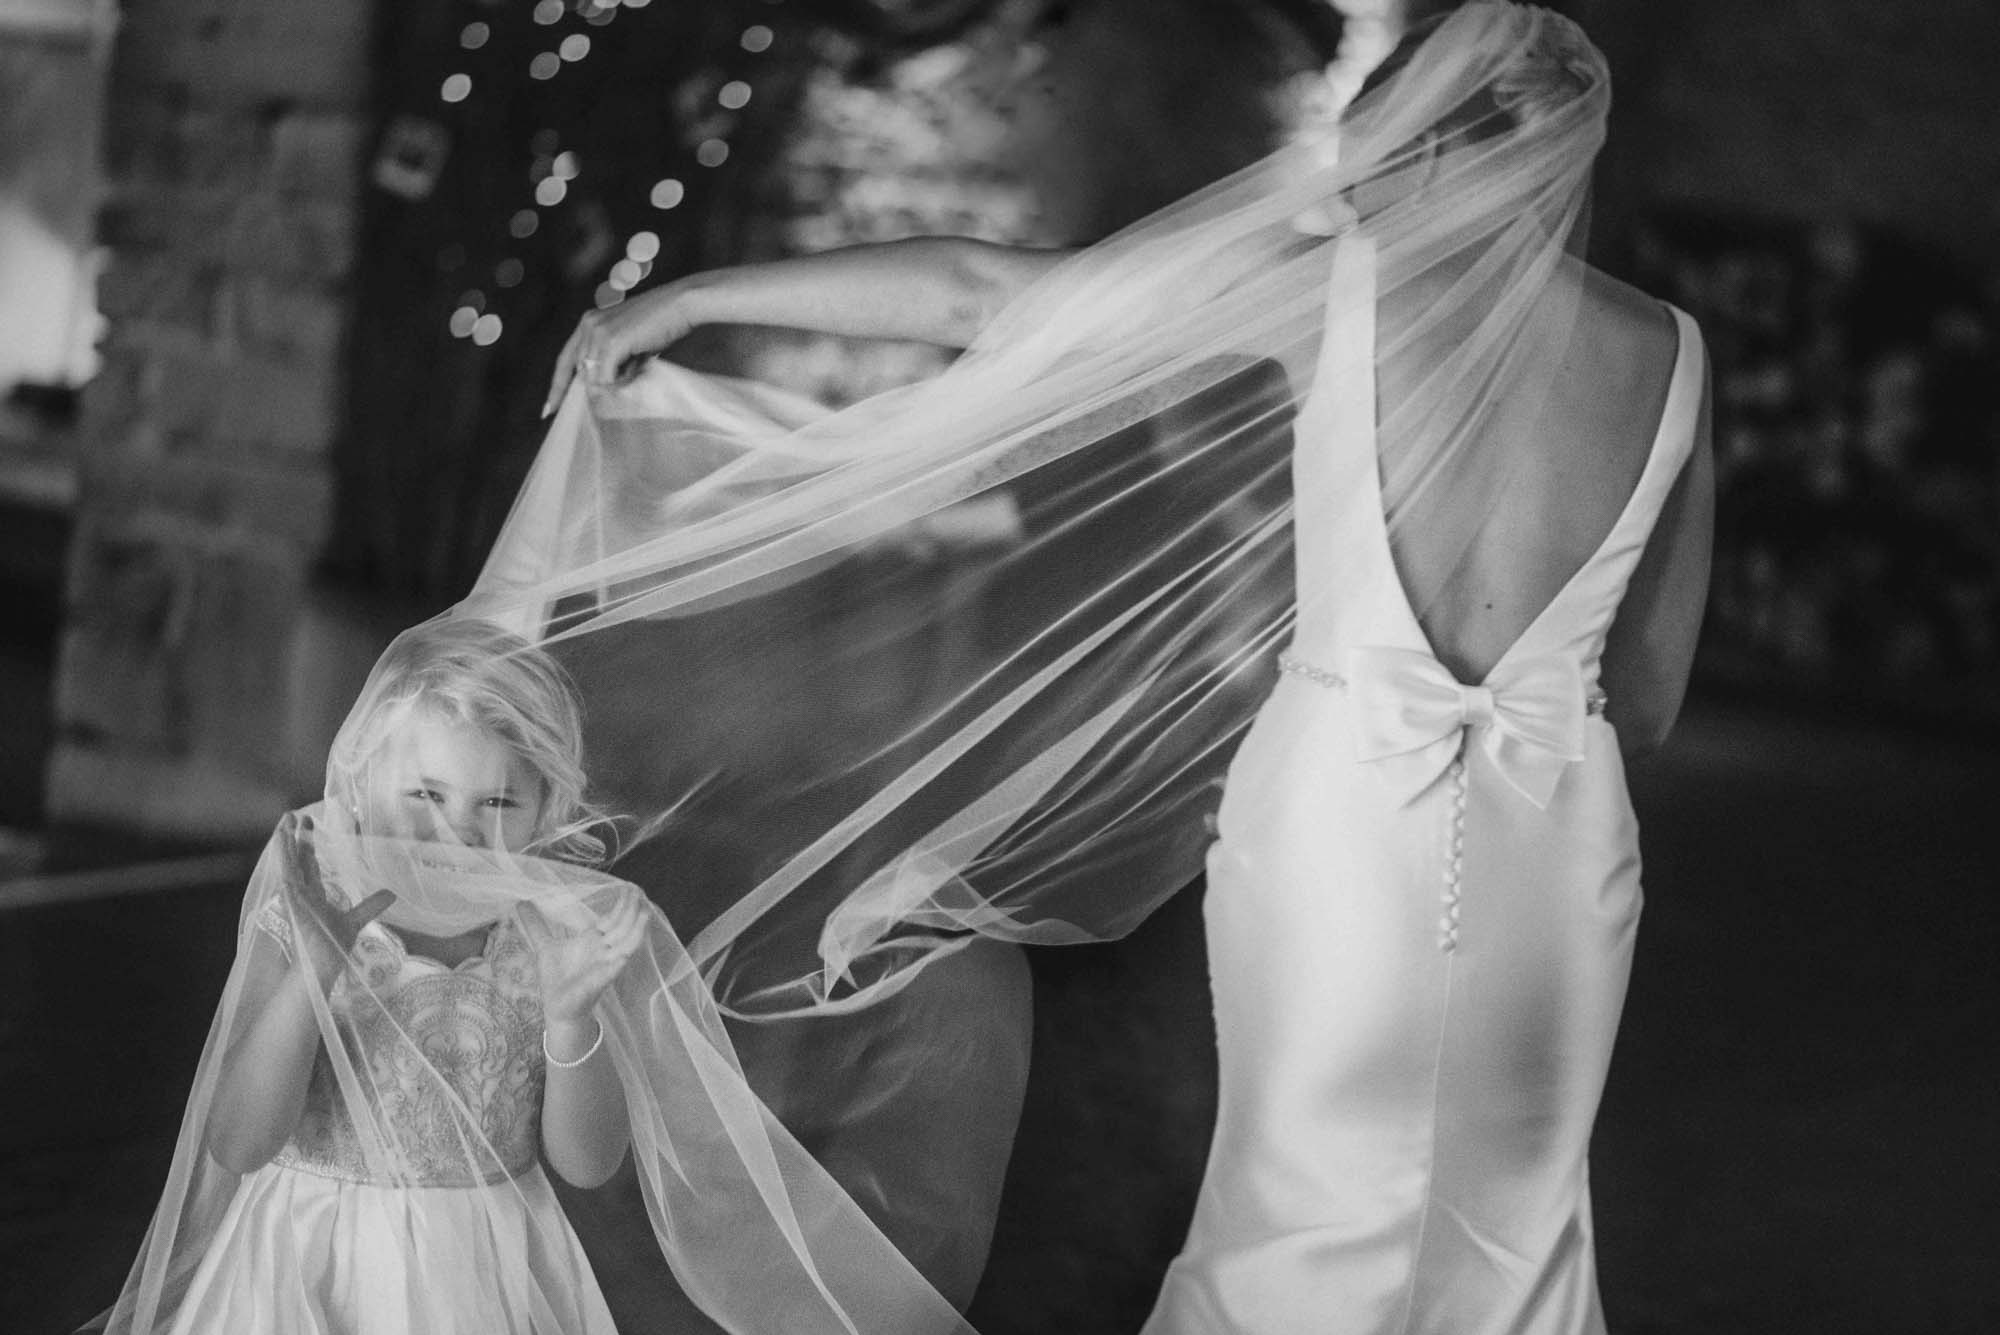 Flower girl playing in Bride Veil Photo